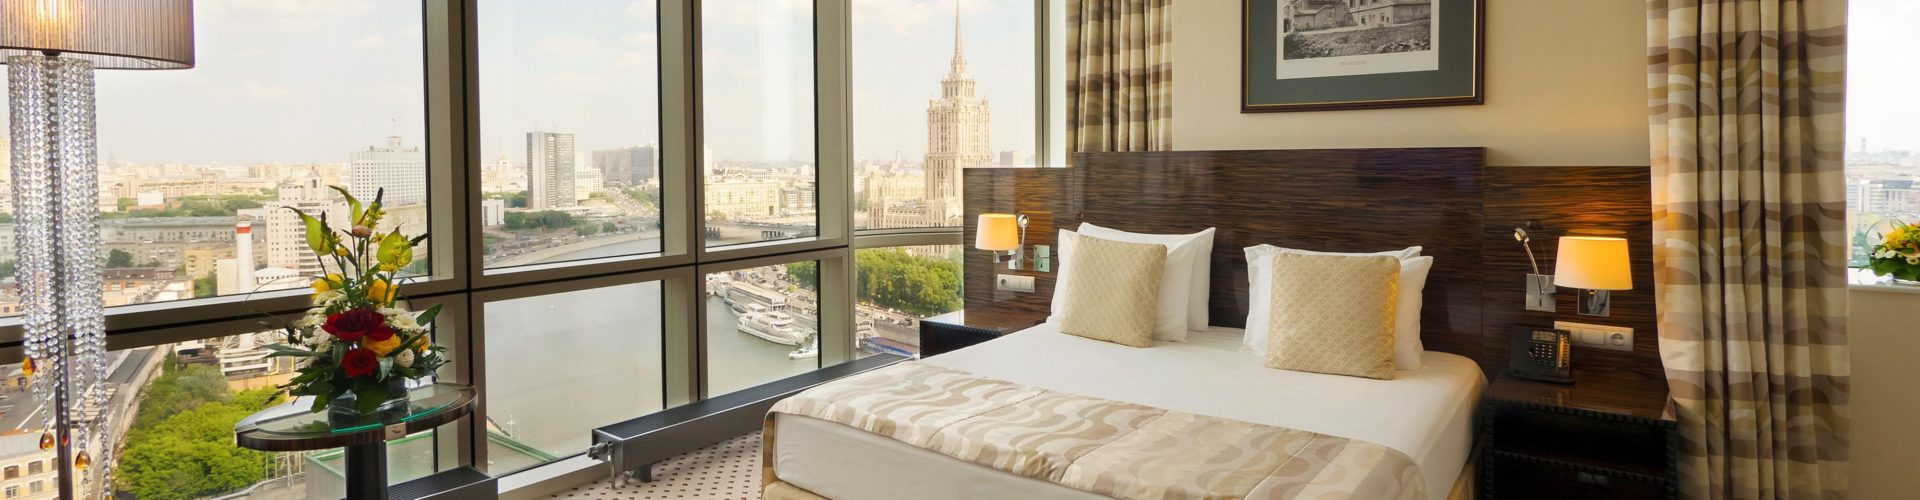 crowne plaza moscow hotel room view river expocenter lobby reception bar outlet restaurants